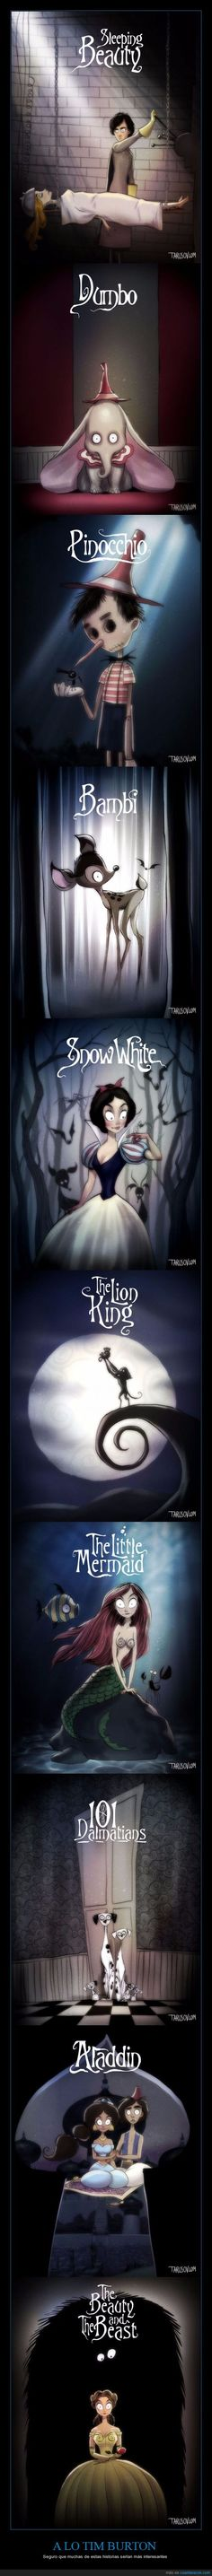 Drawing Cartoon Disney Tim Burton Ideas For 2019 Dark Disney, Disney And More, Cute Disney, Disney Art, Estilo Tim Burton, Tim Burton Style, Tim Burton Art, Disney Memes, Disney Cartoons